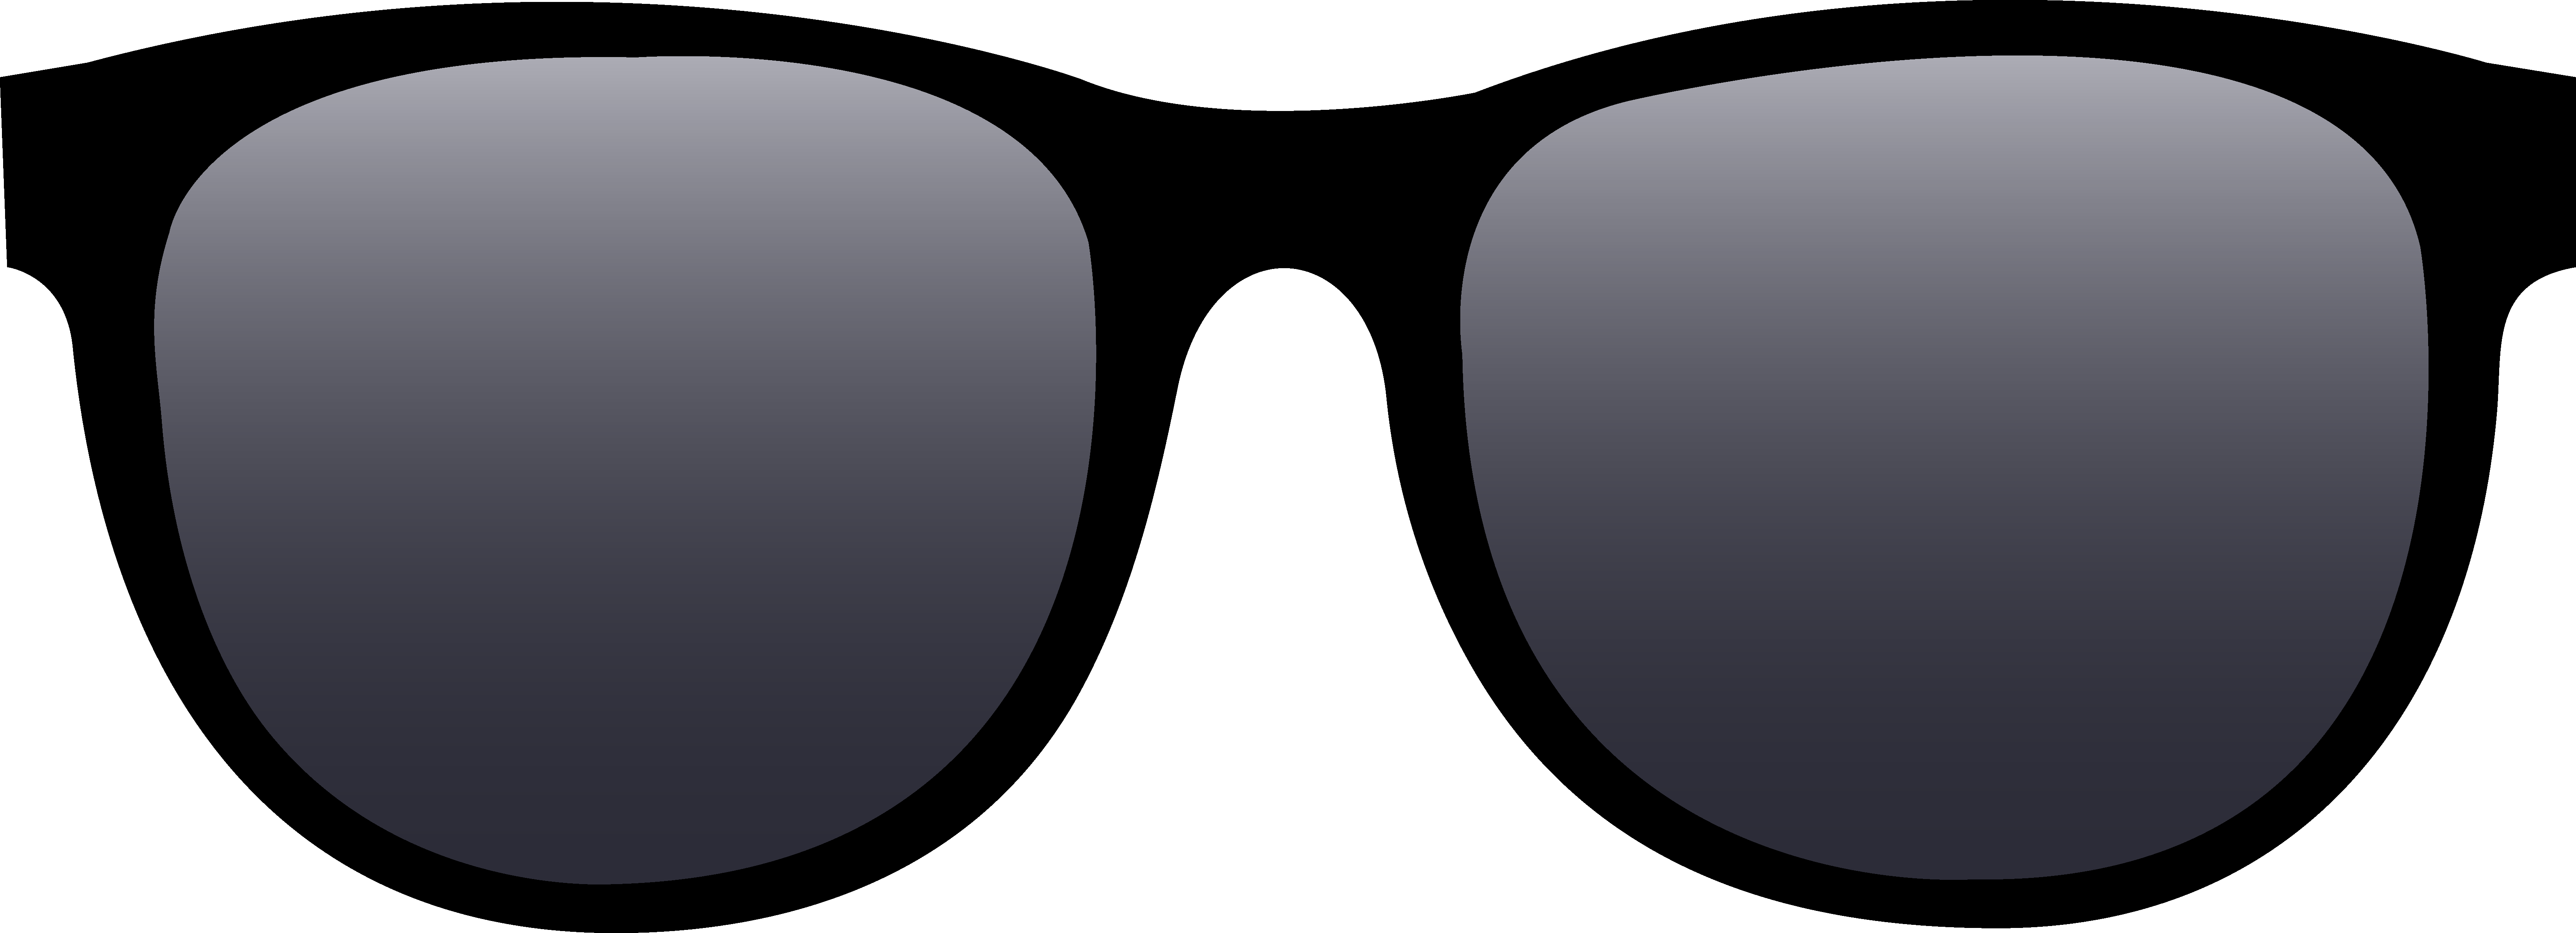 6638x2404 Deal With It Glasses Clipart